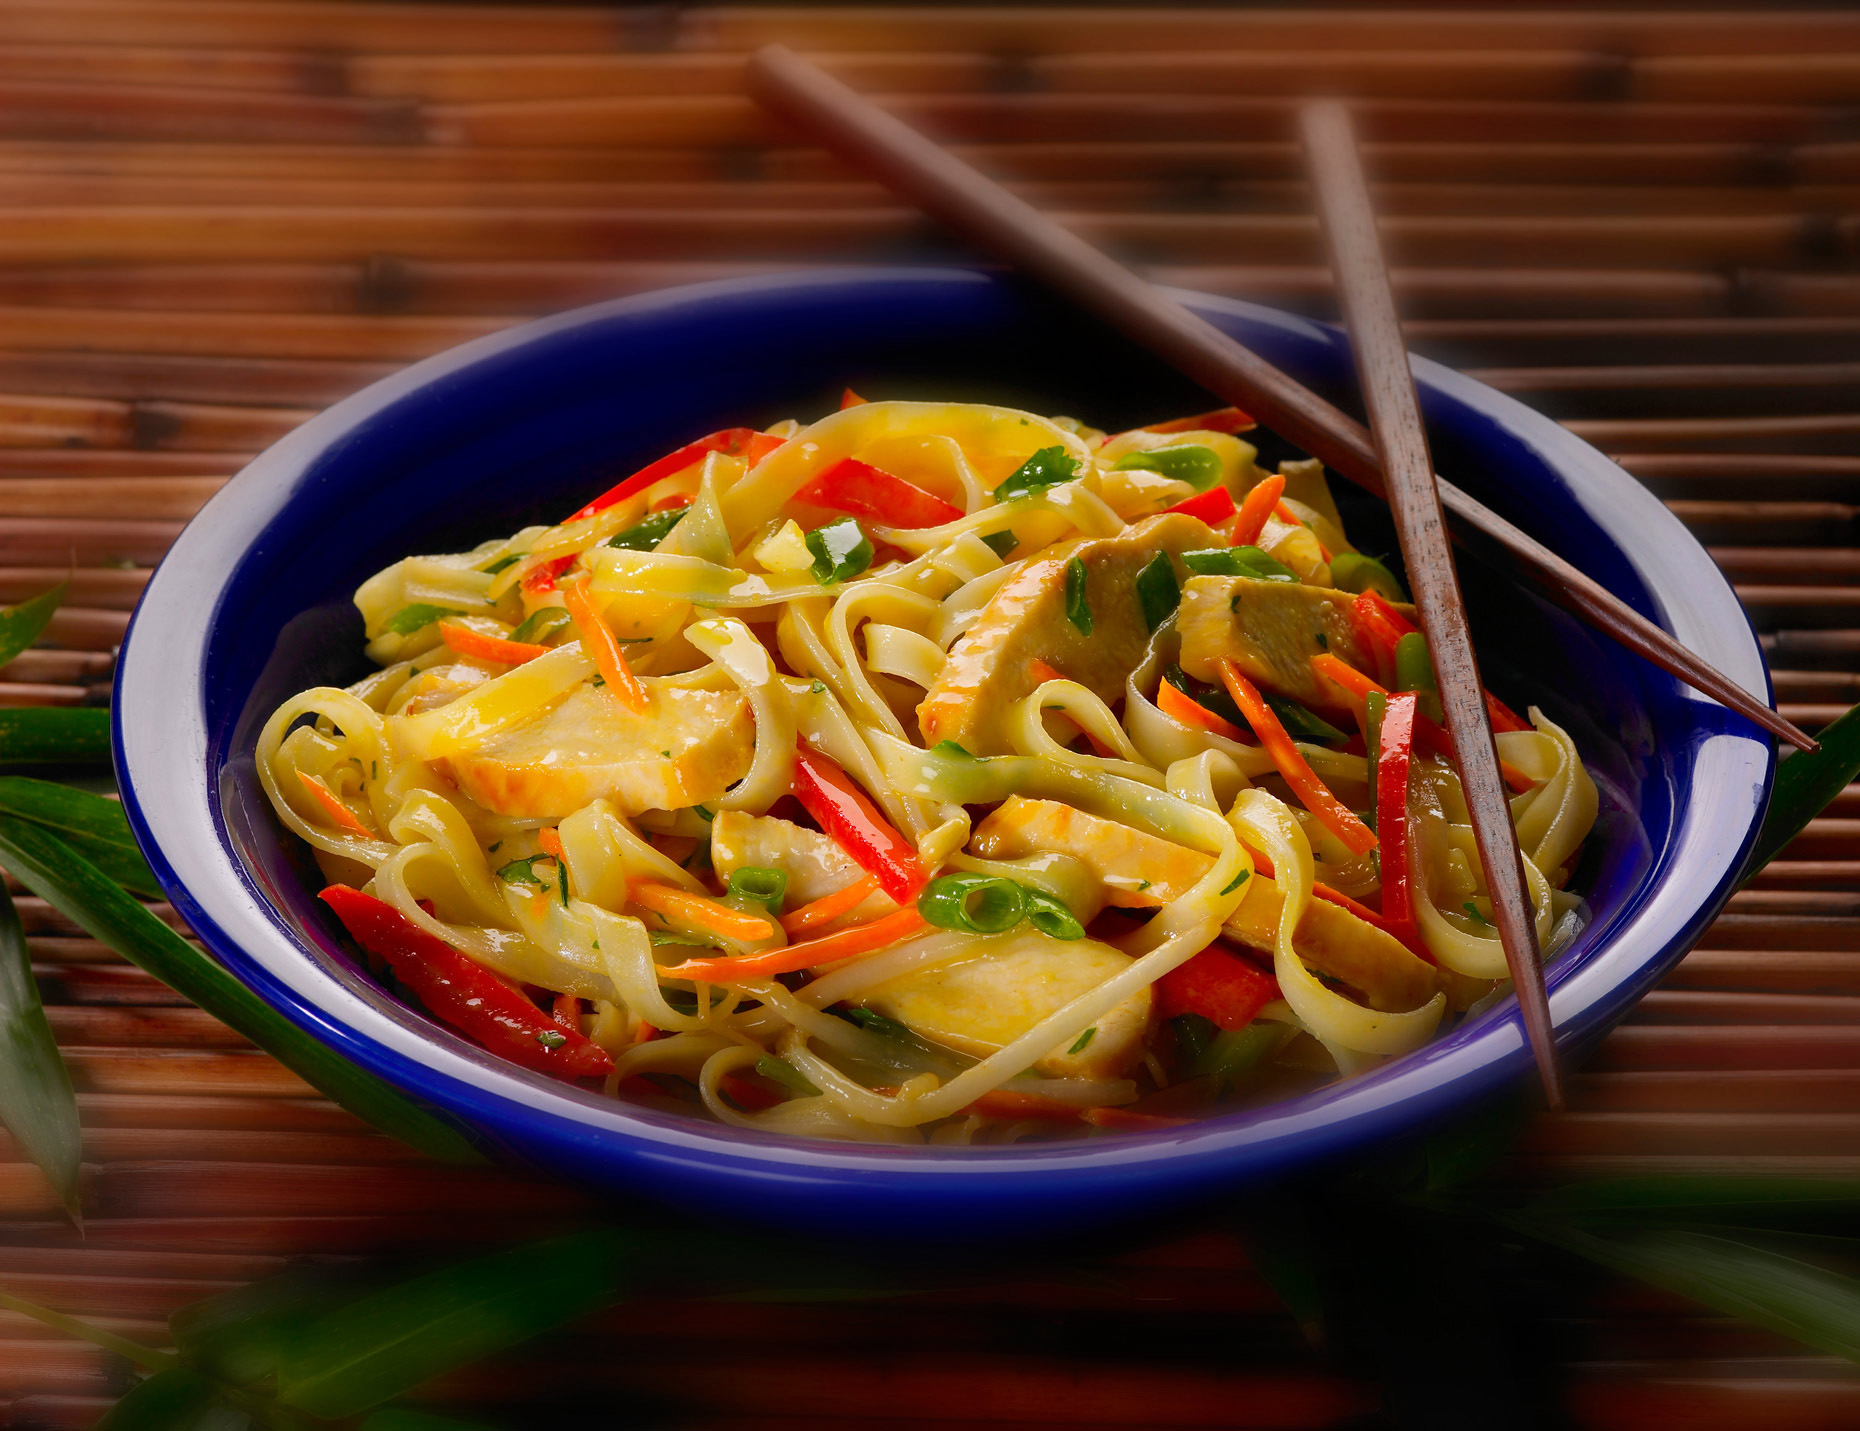 Food Photography | Asian Noodle Dish